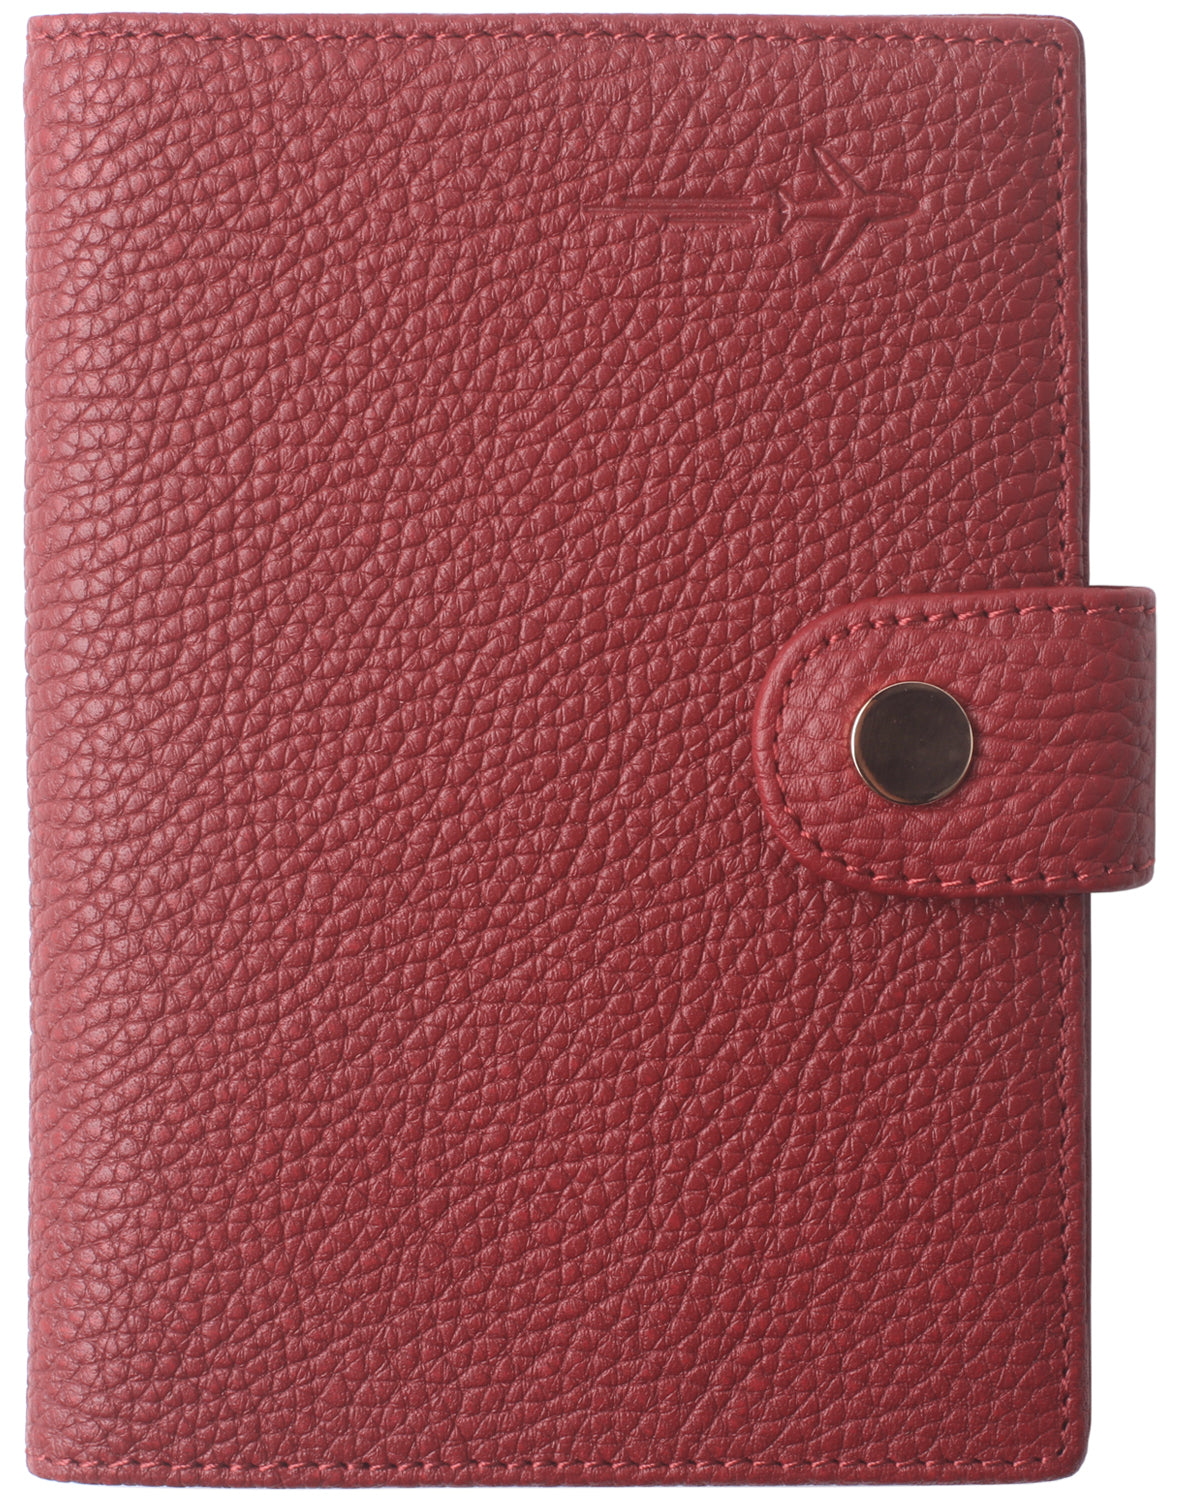 Leather Rfid Blocking Travel Passport Holder Cover Slim ID Card Case Wallet Crosshatch BG1233 Limited Red - Borgasets